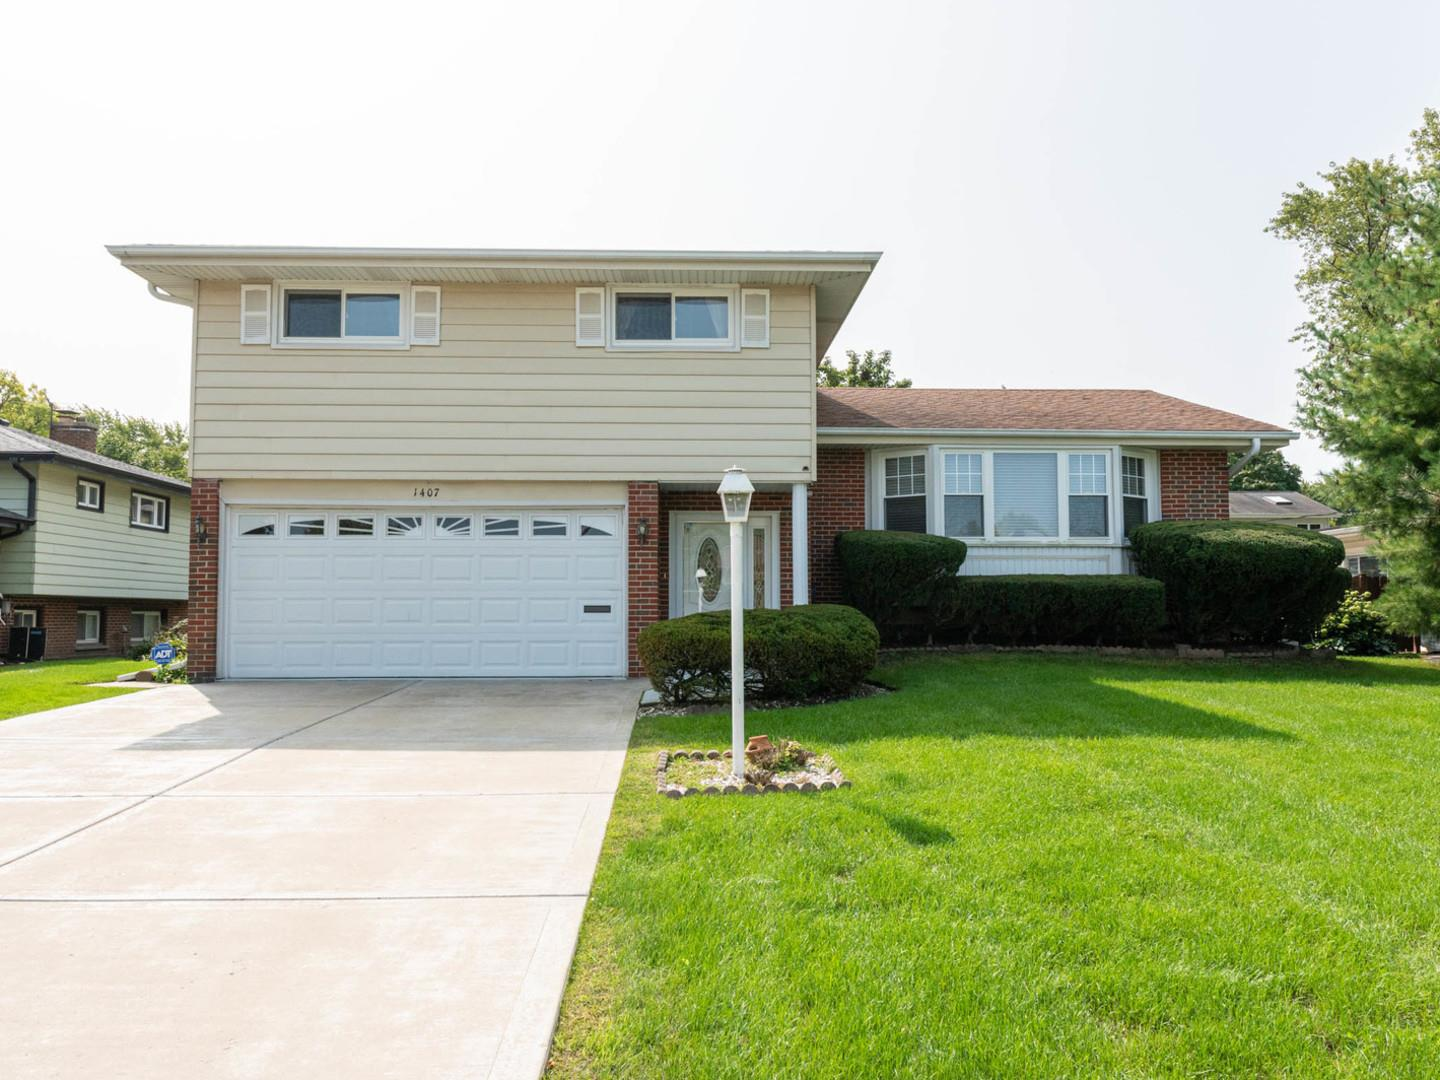 1407 BARBERRY Lane, Mount Prospect, IL 60056 - #: 10940080